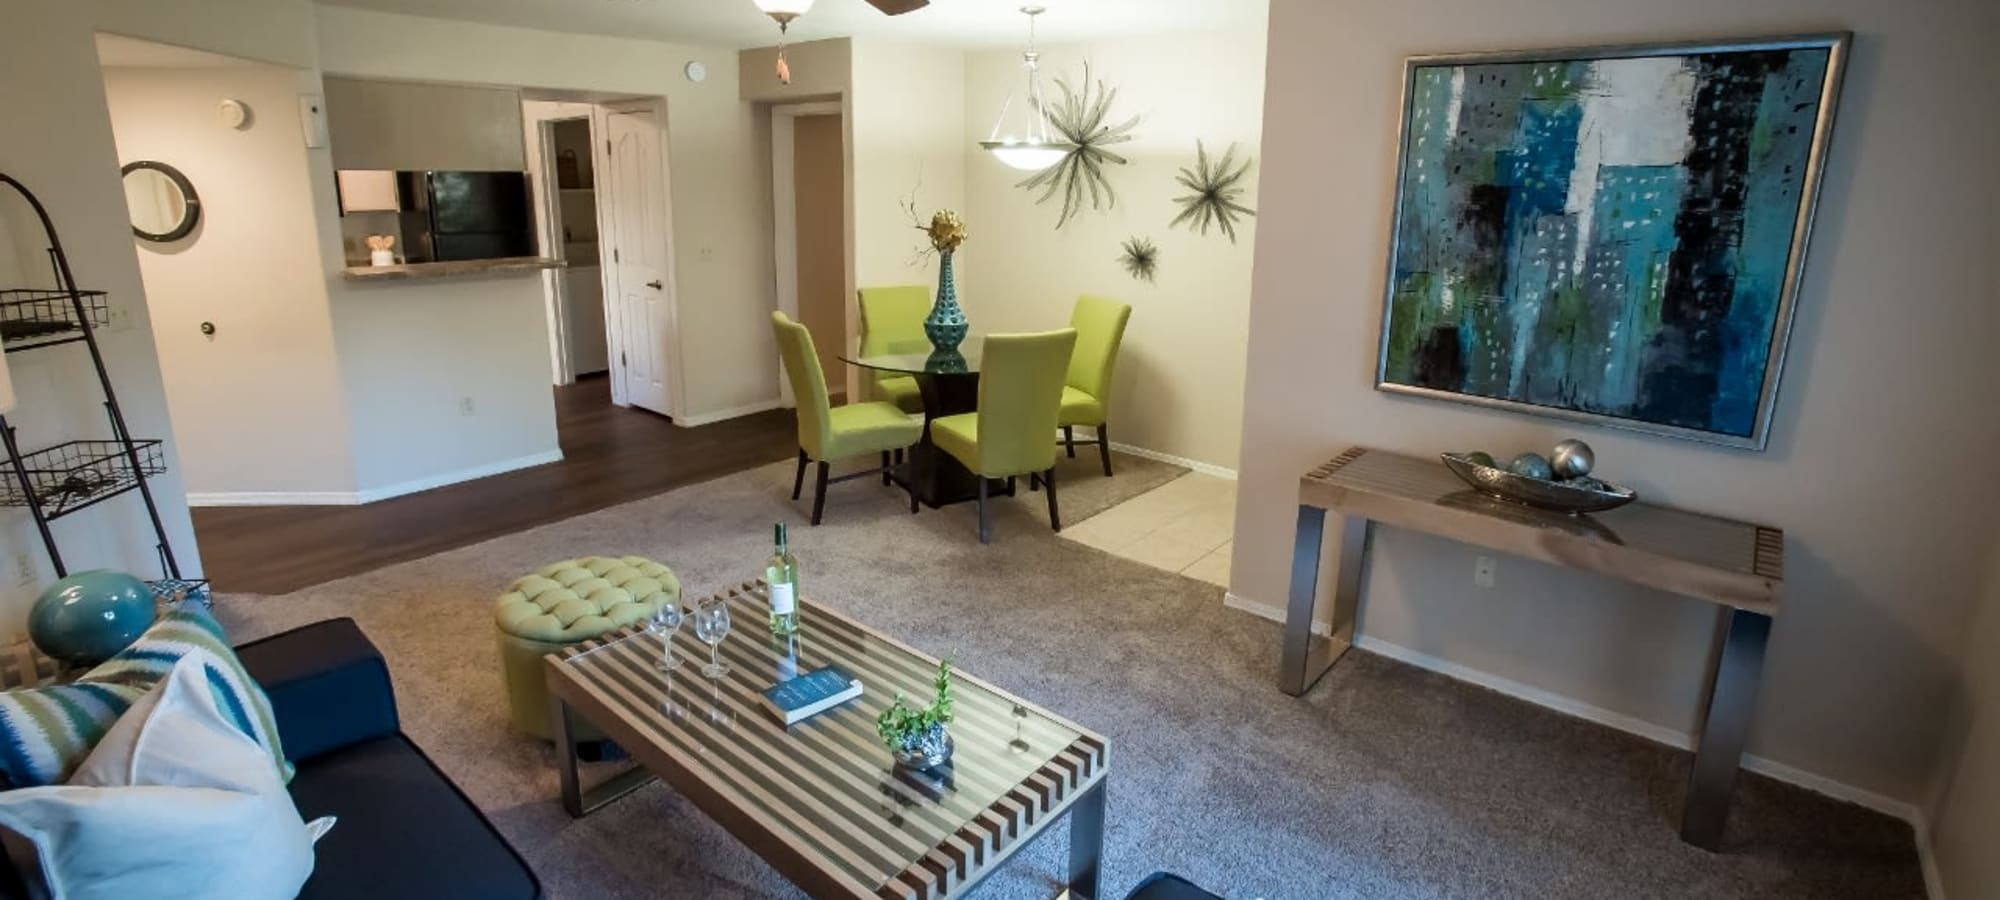 Dining and living room at The Palms on Scottsdale in Tempe, Arizona